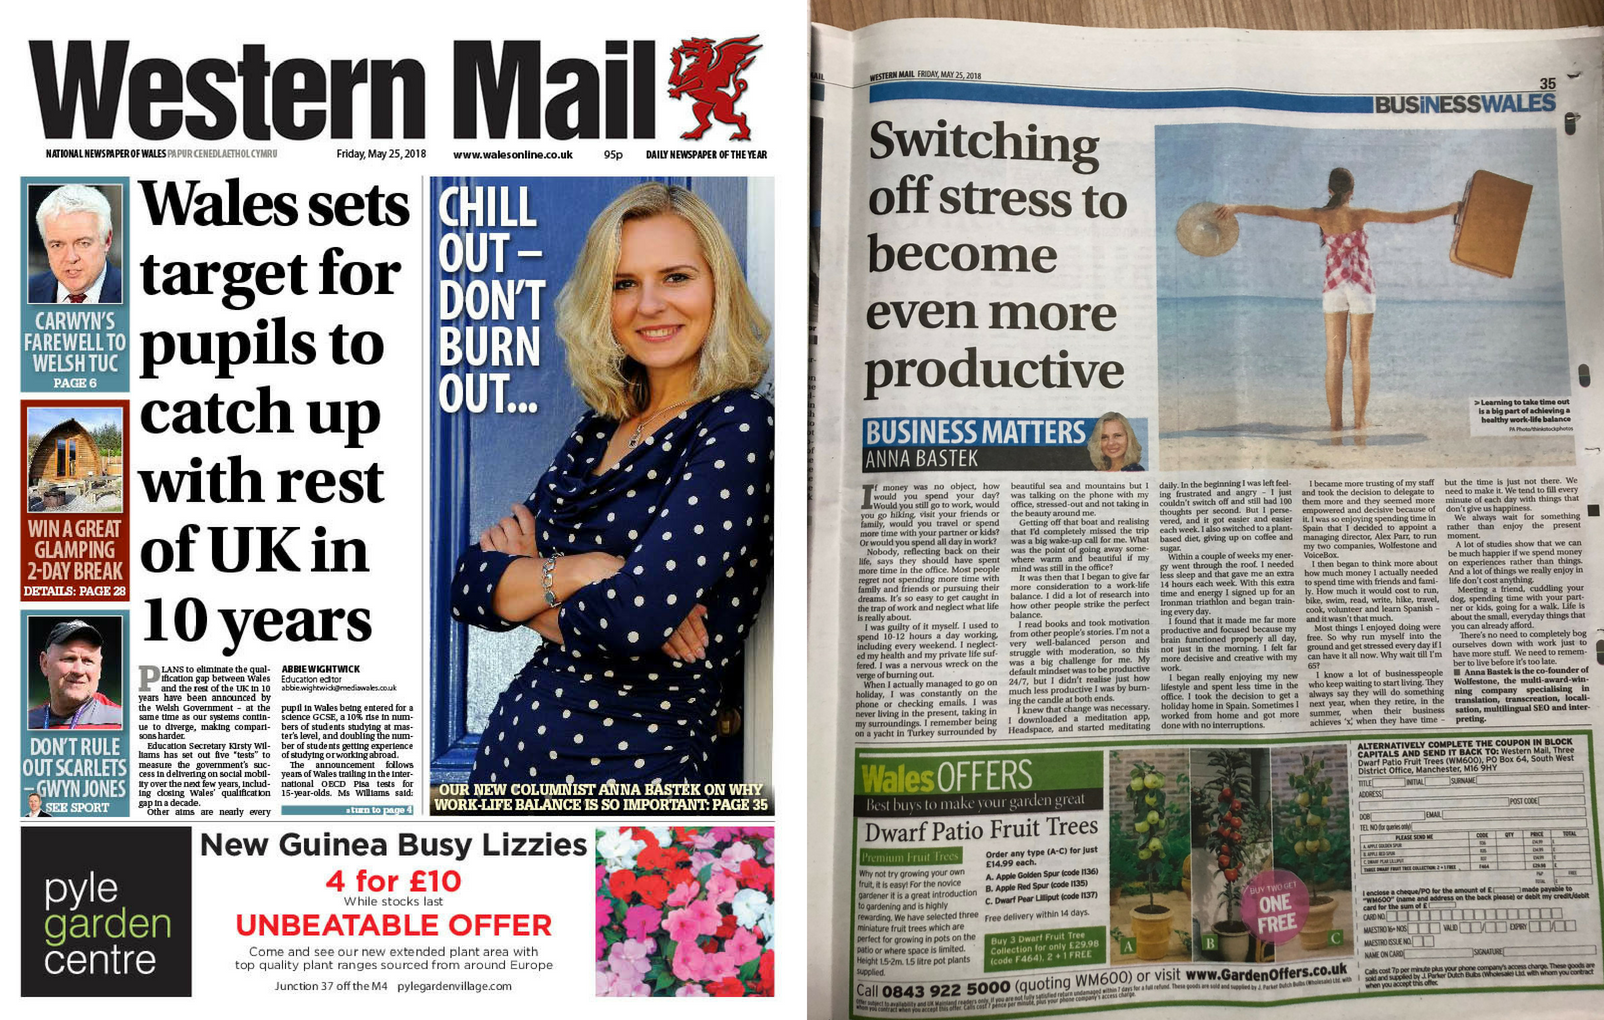 Two images of Anna Bastek's article in the Western Mail. On the left hand side is a PDF image from the front page of the Western Mail. On the right-hand side is an image of her column.